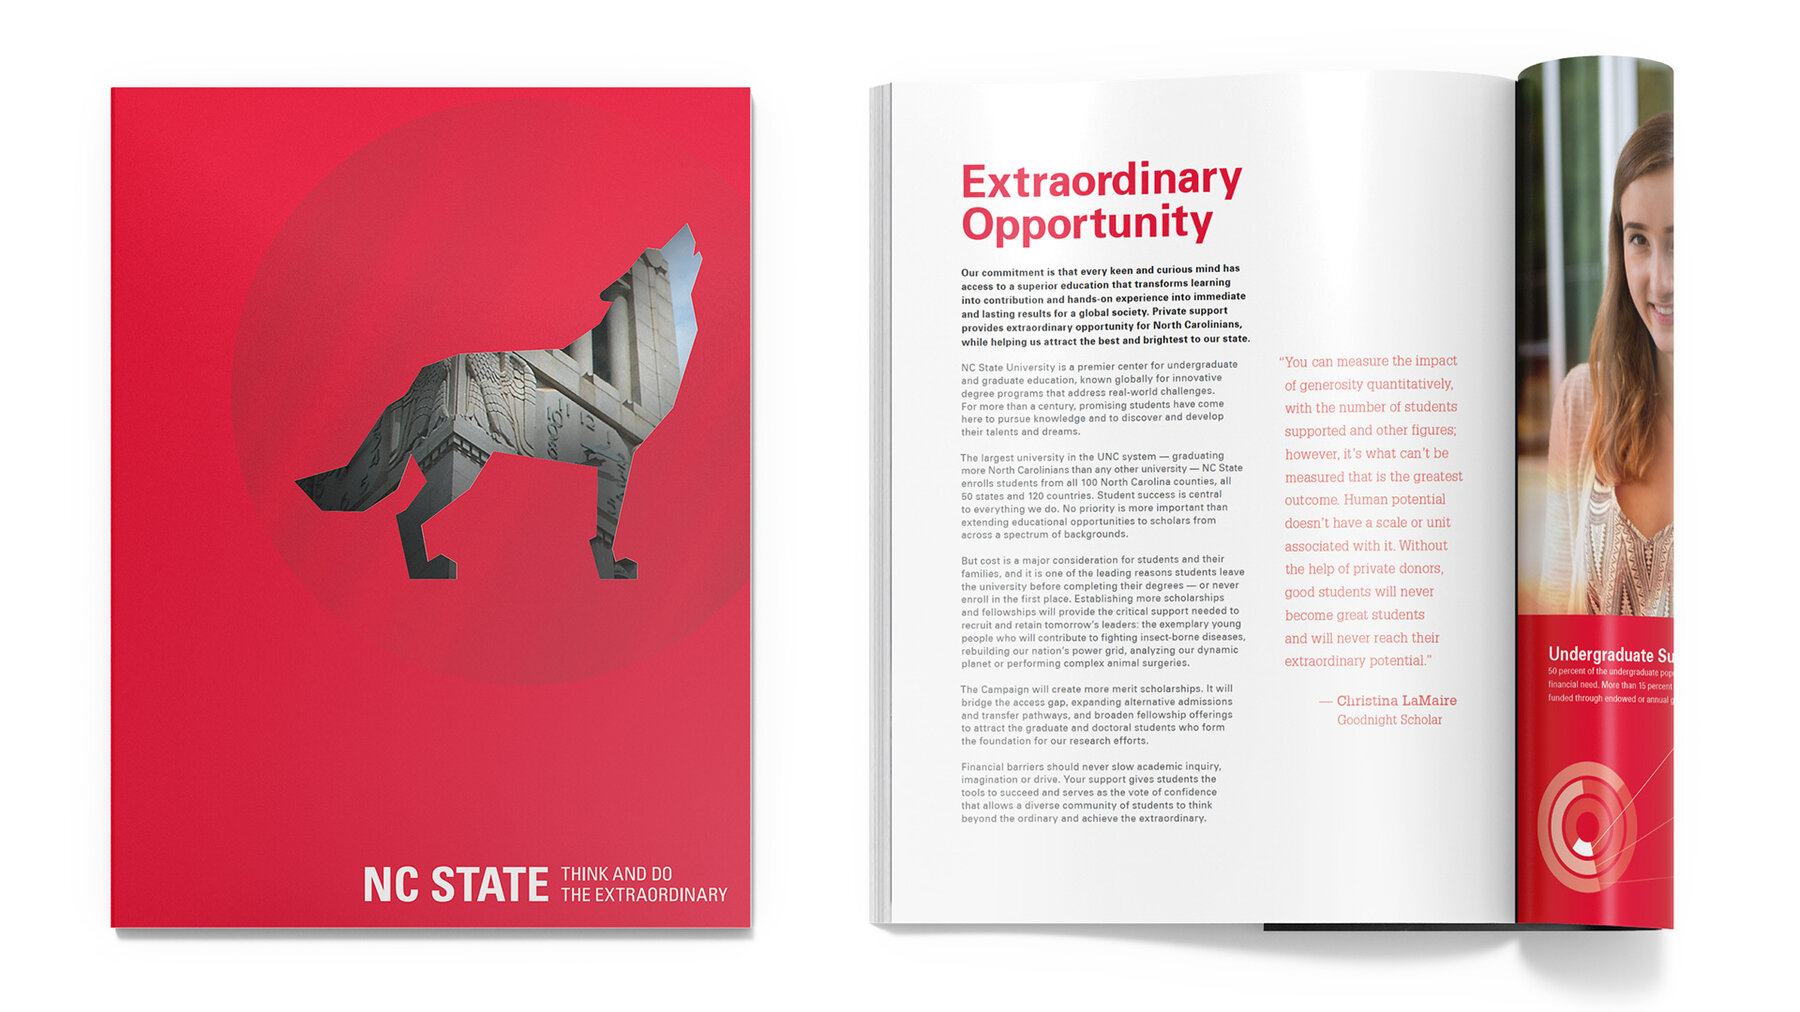 Nc state background image 4